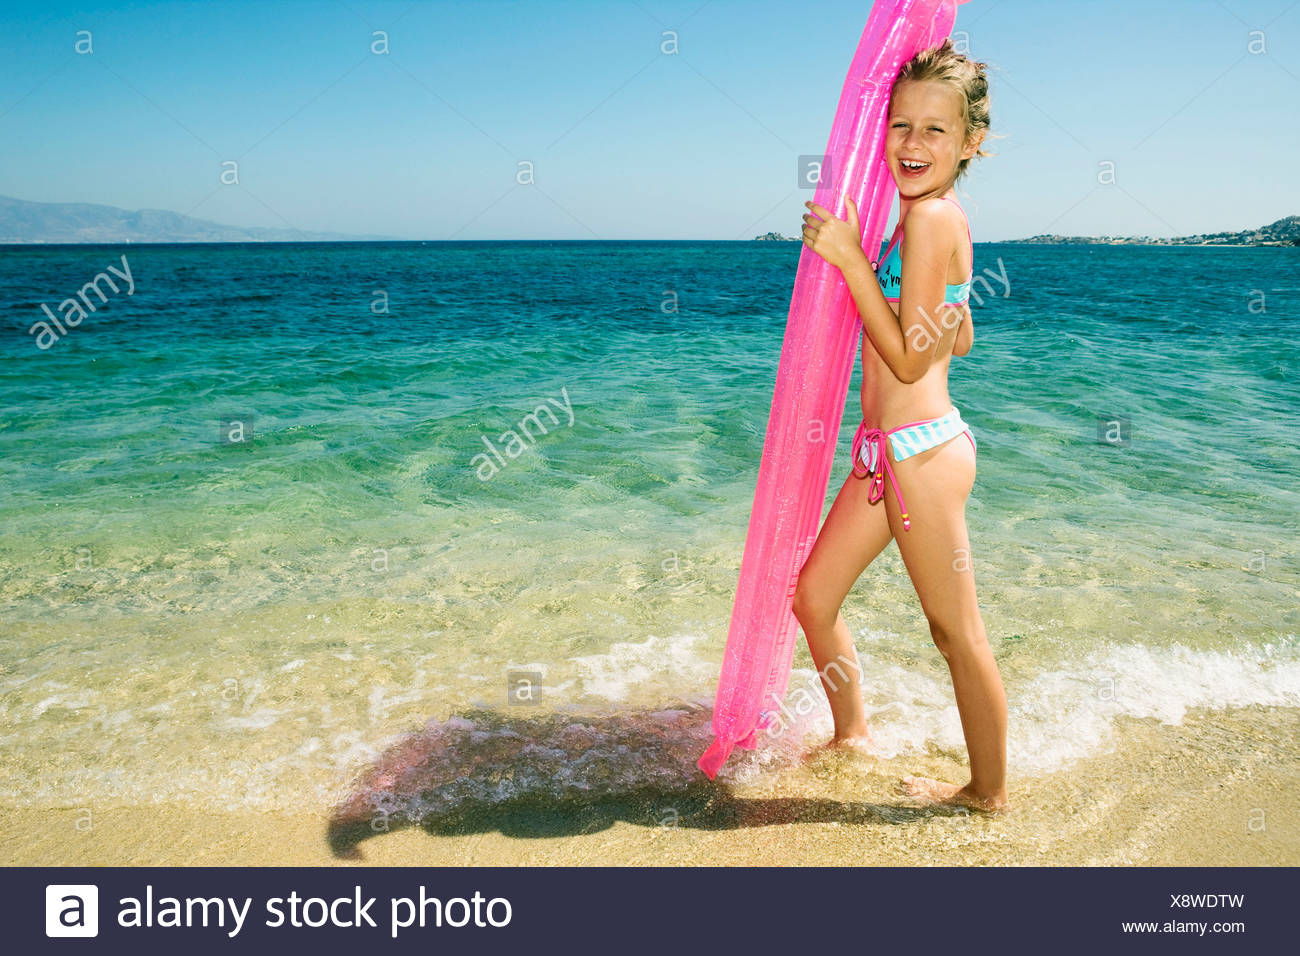 Young girl holding up an inflatable raft at the beach smiling. Stock Photo